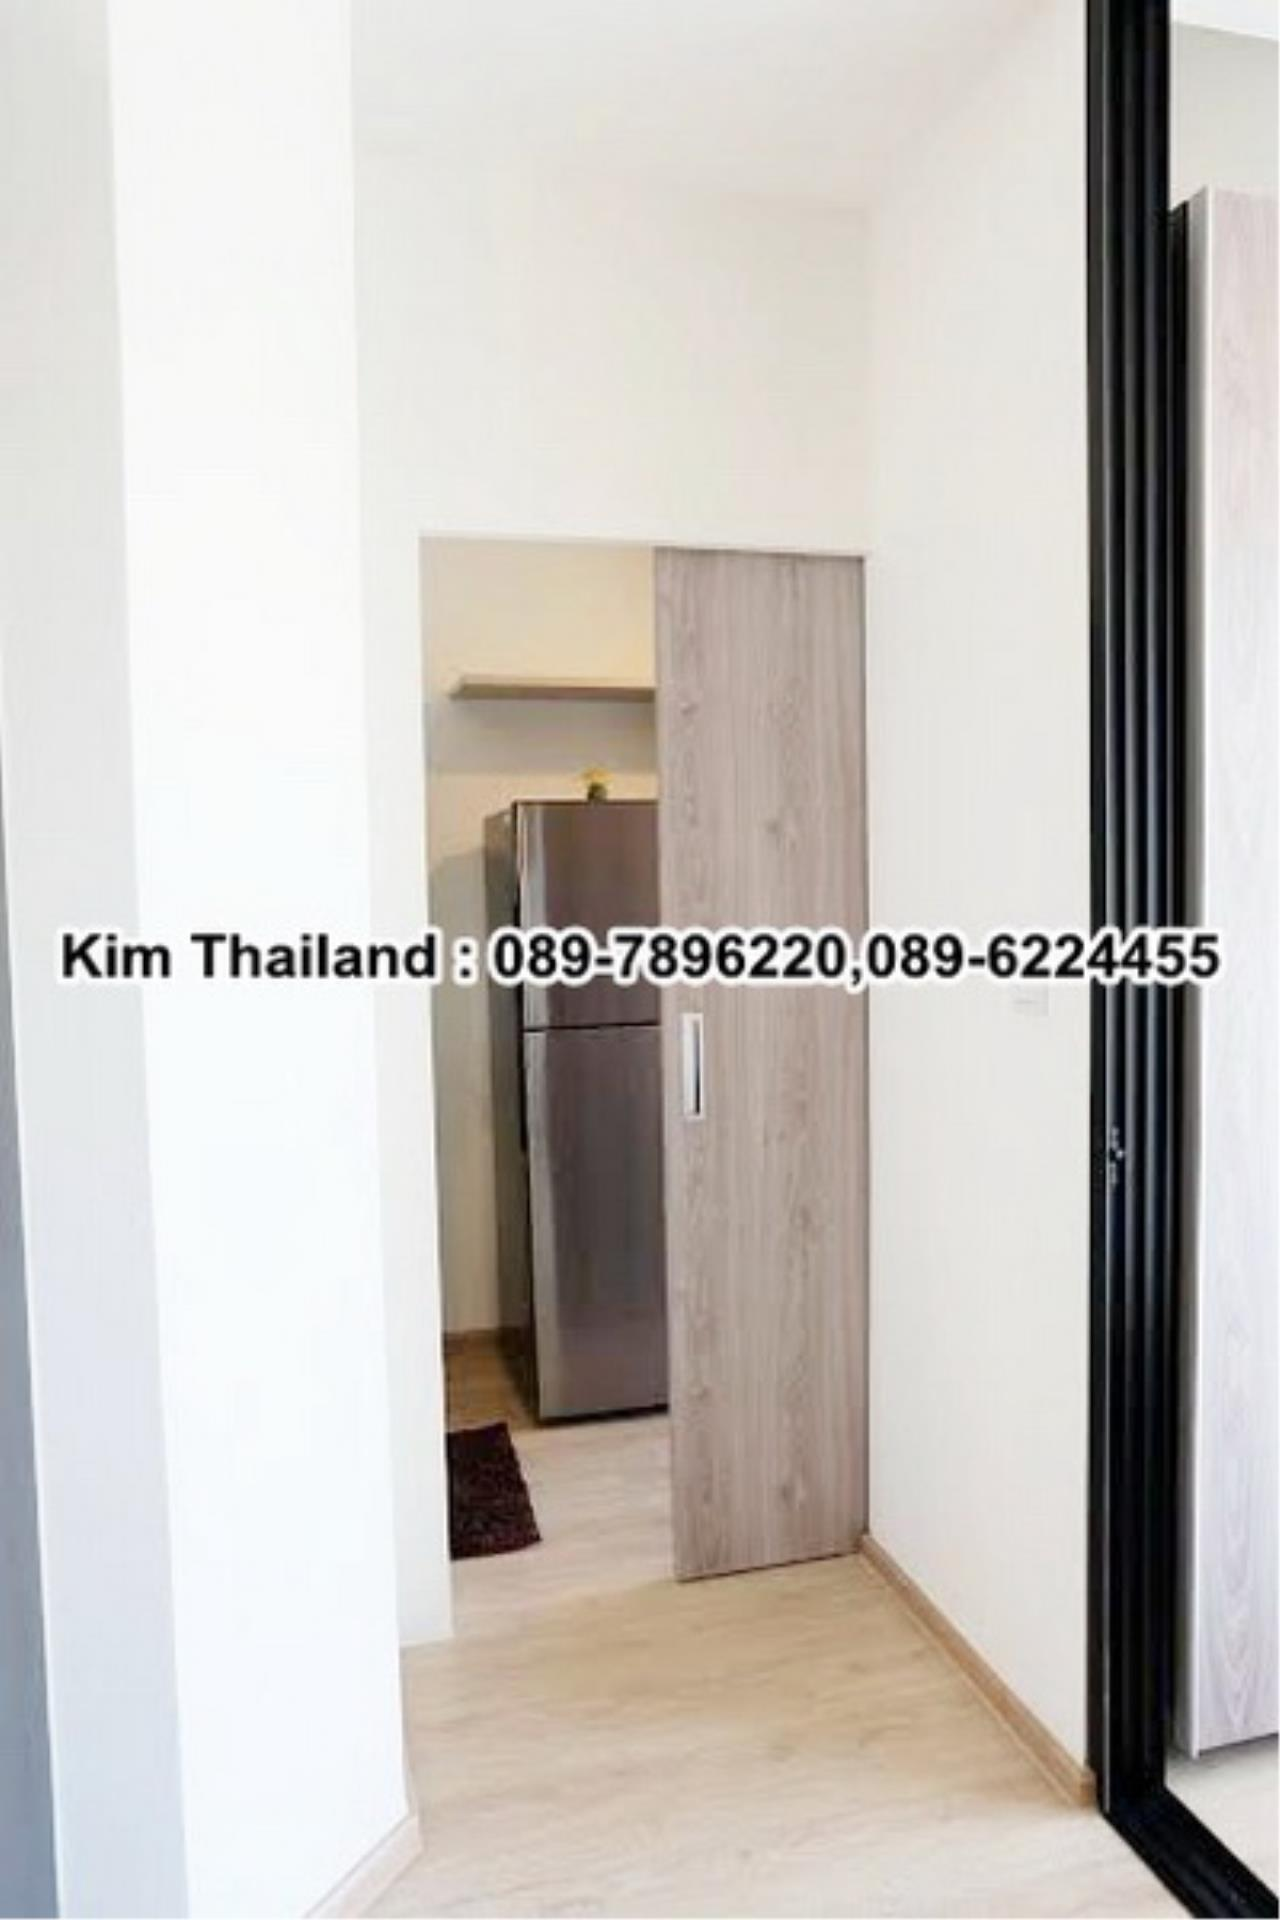 BKKcondorental Agency's Condo for rent,Condo Ideo Q Samyan. Area 29 sqm. 1 bedroom.  Rent 23,000 baht /month. 4